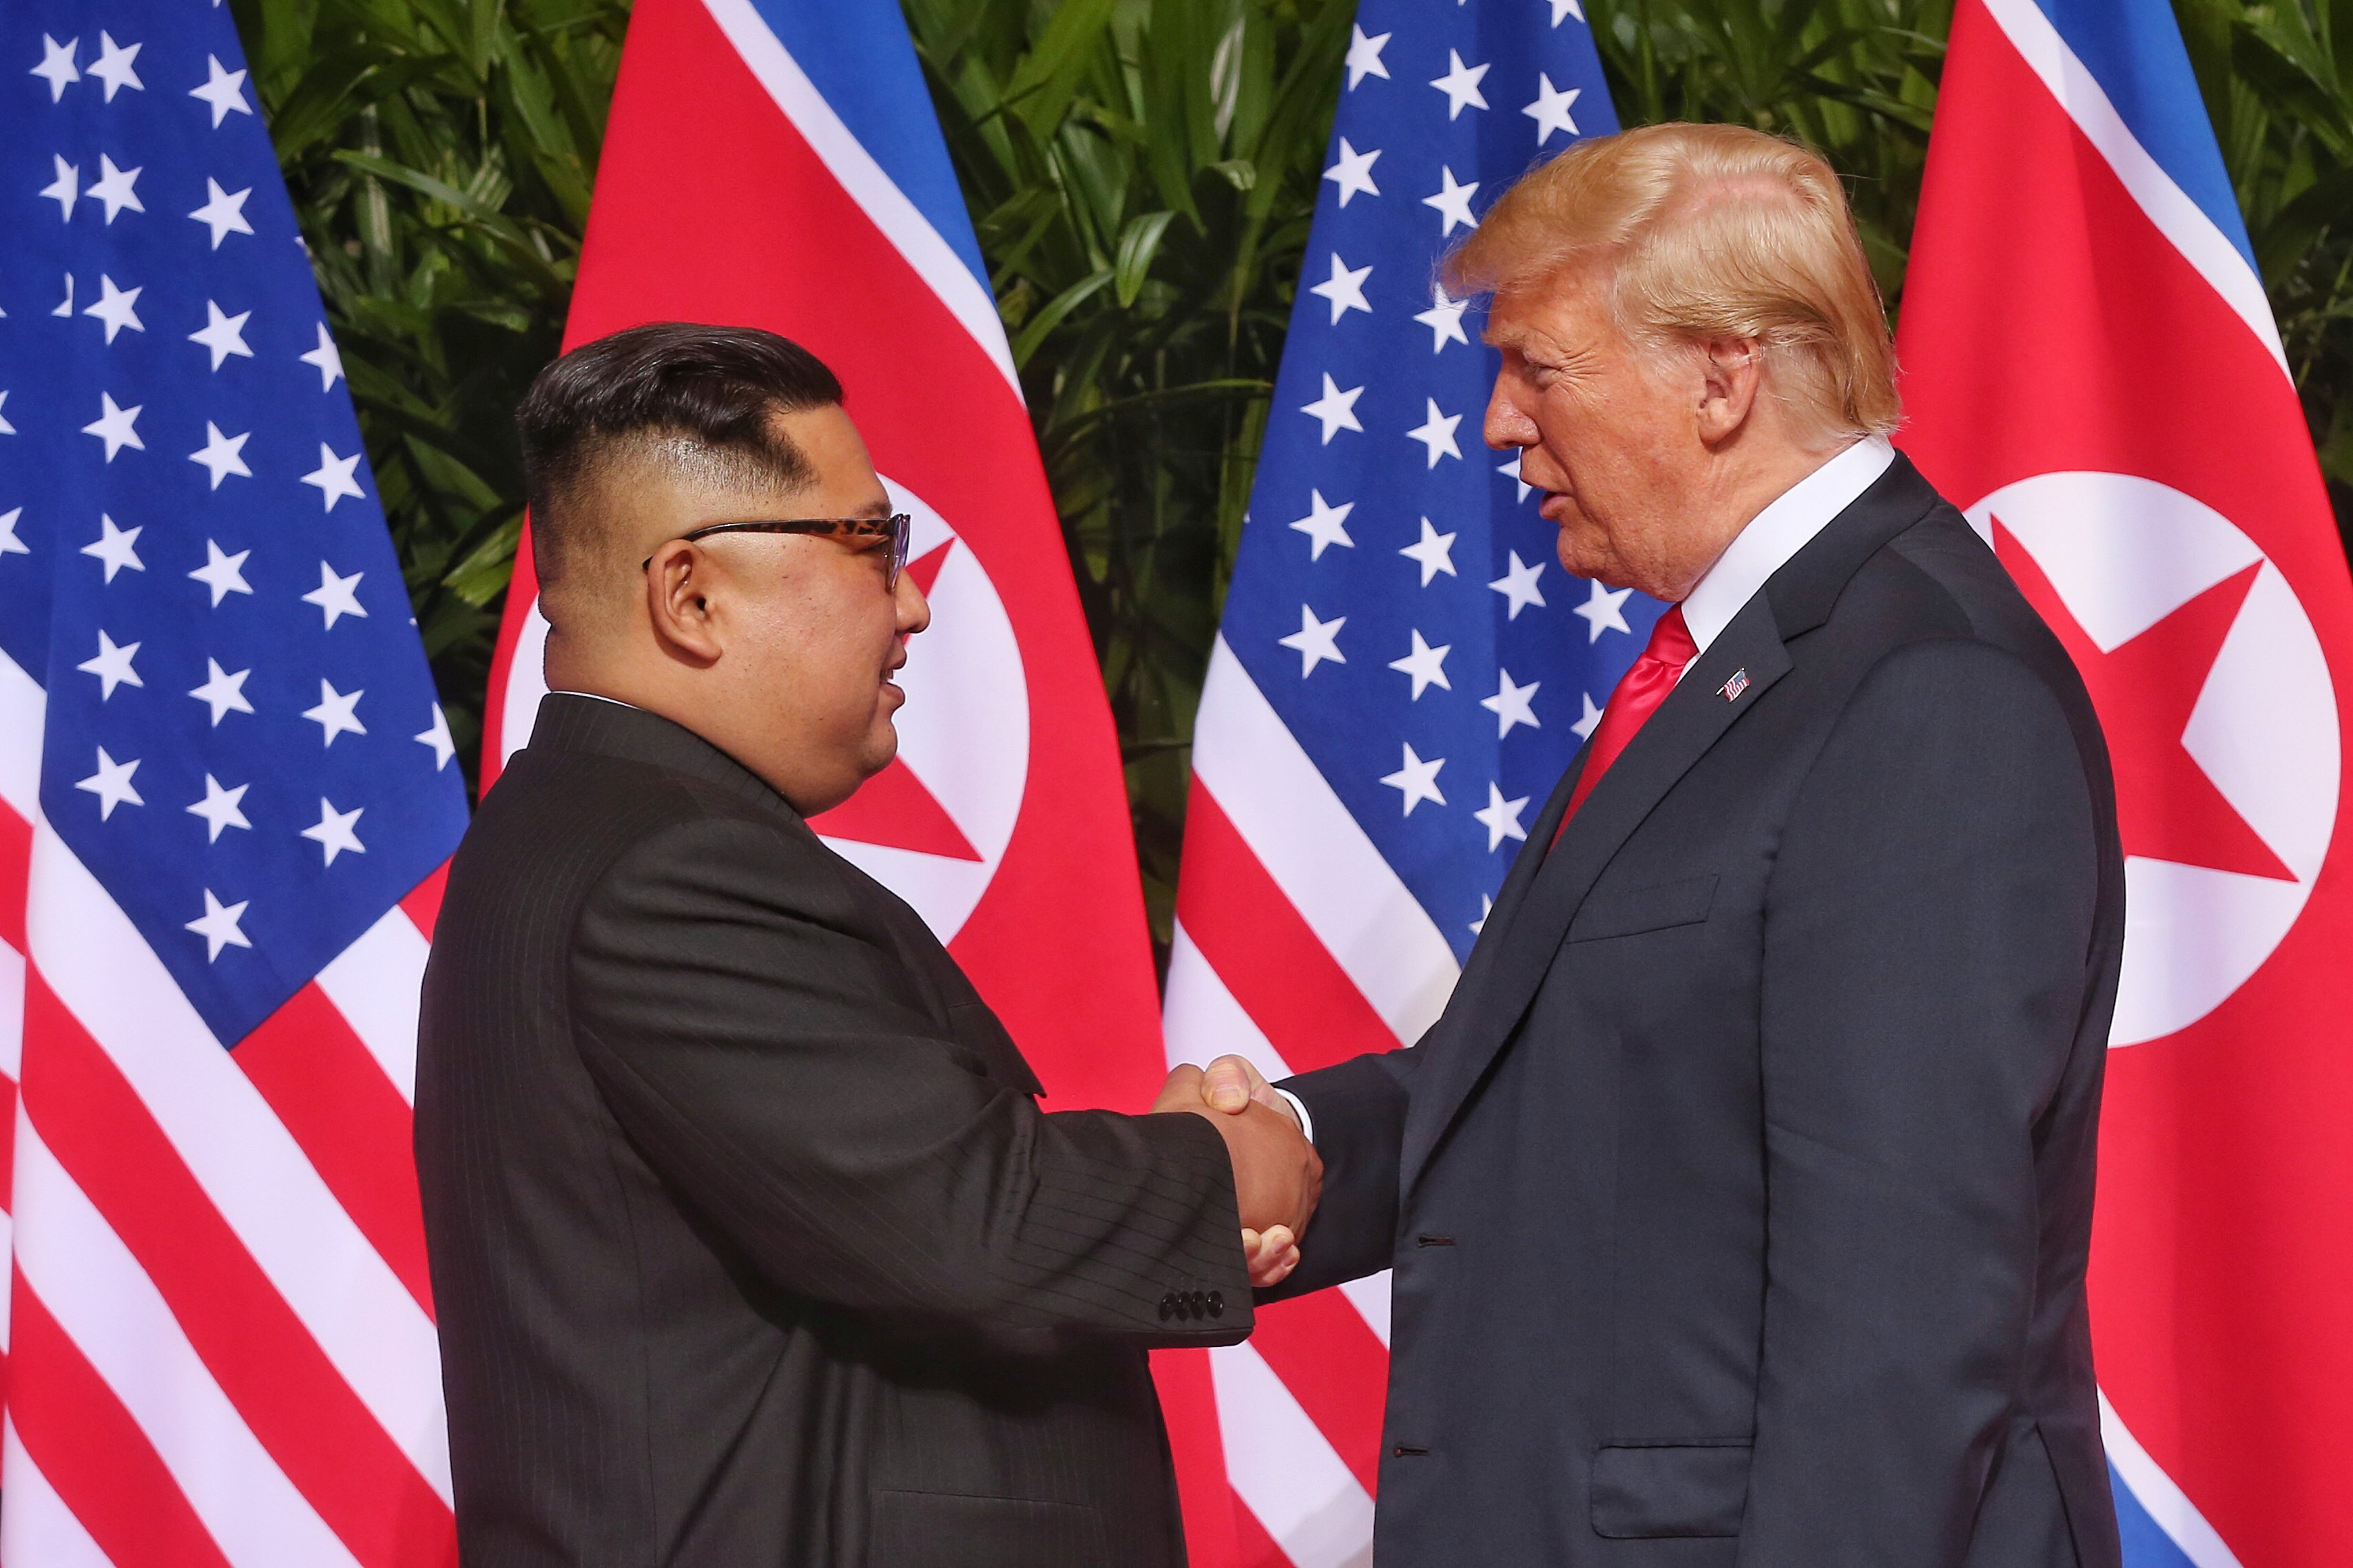 US President Donald Trump and North Korean leader Kim Jong Un shake hands in front of the world's media as DPRK-USA Singapore Summit started today.